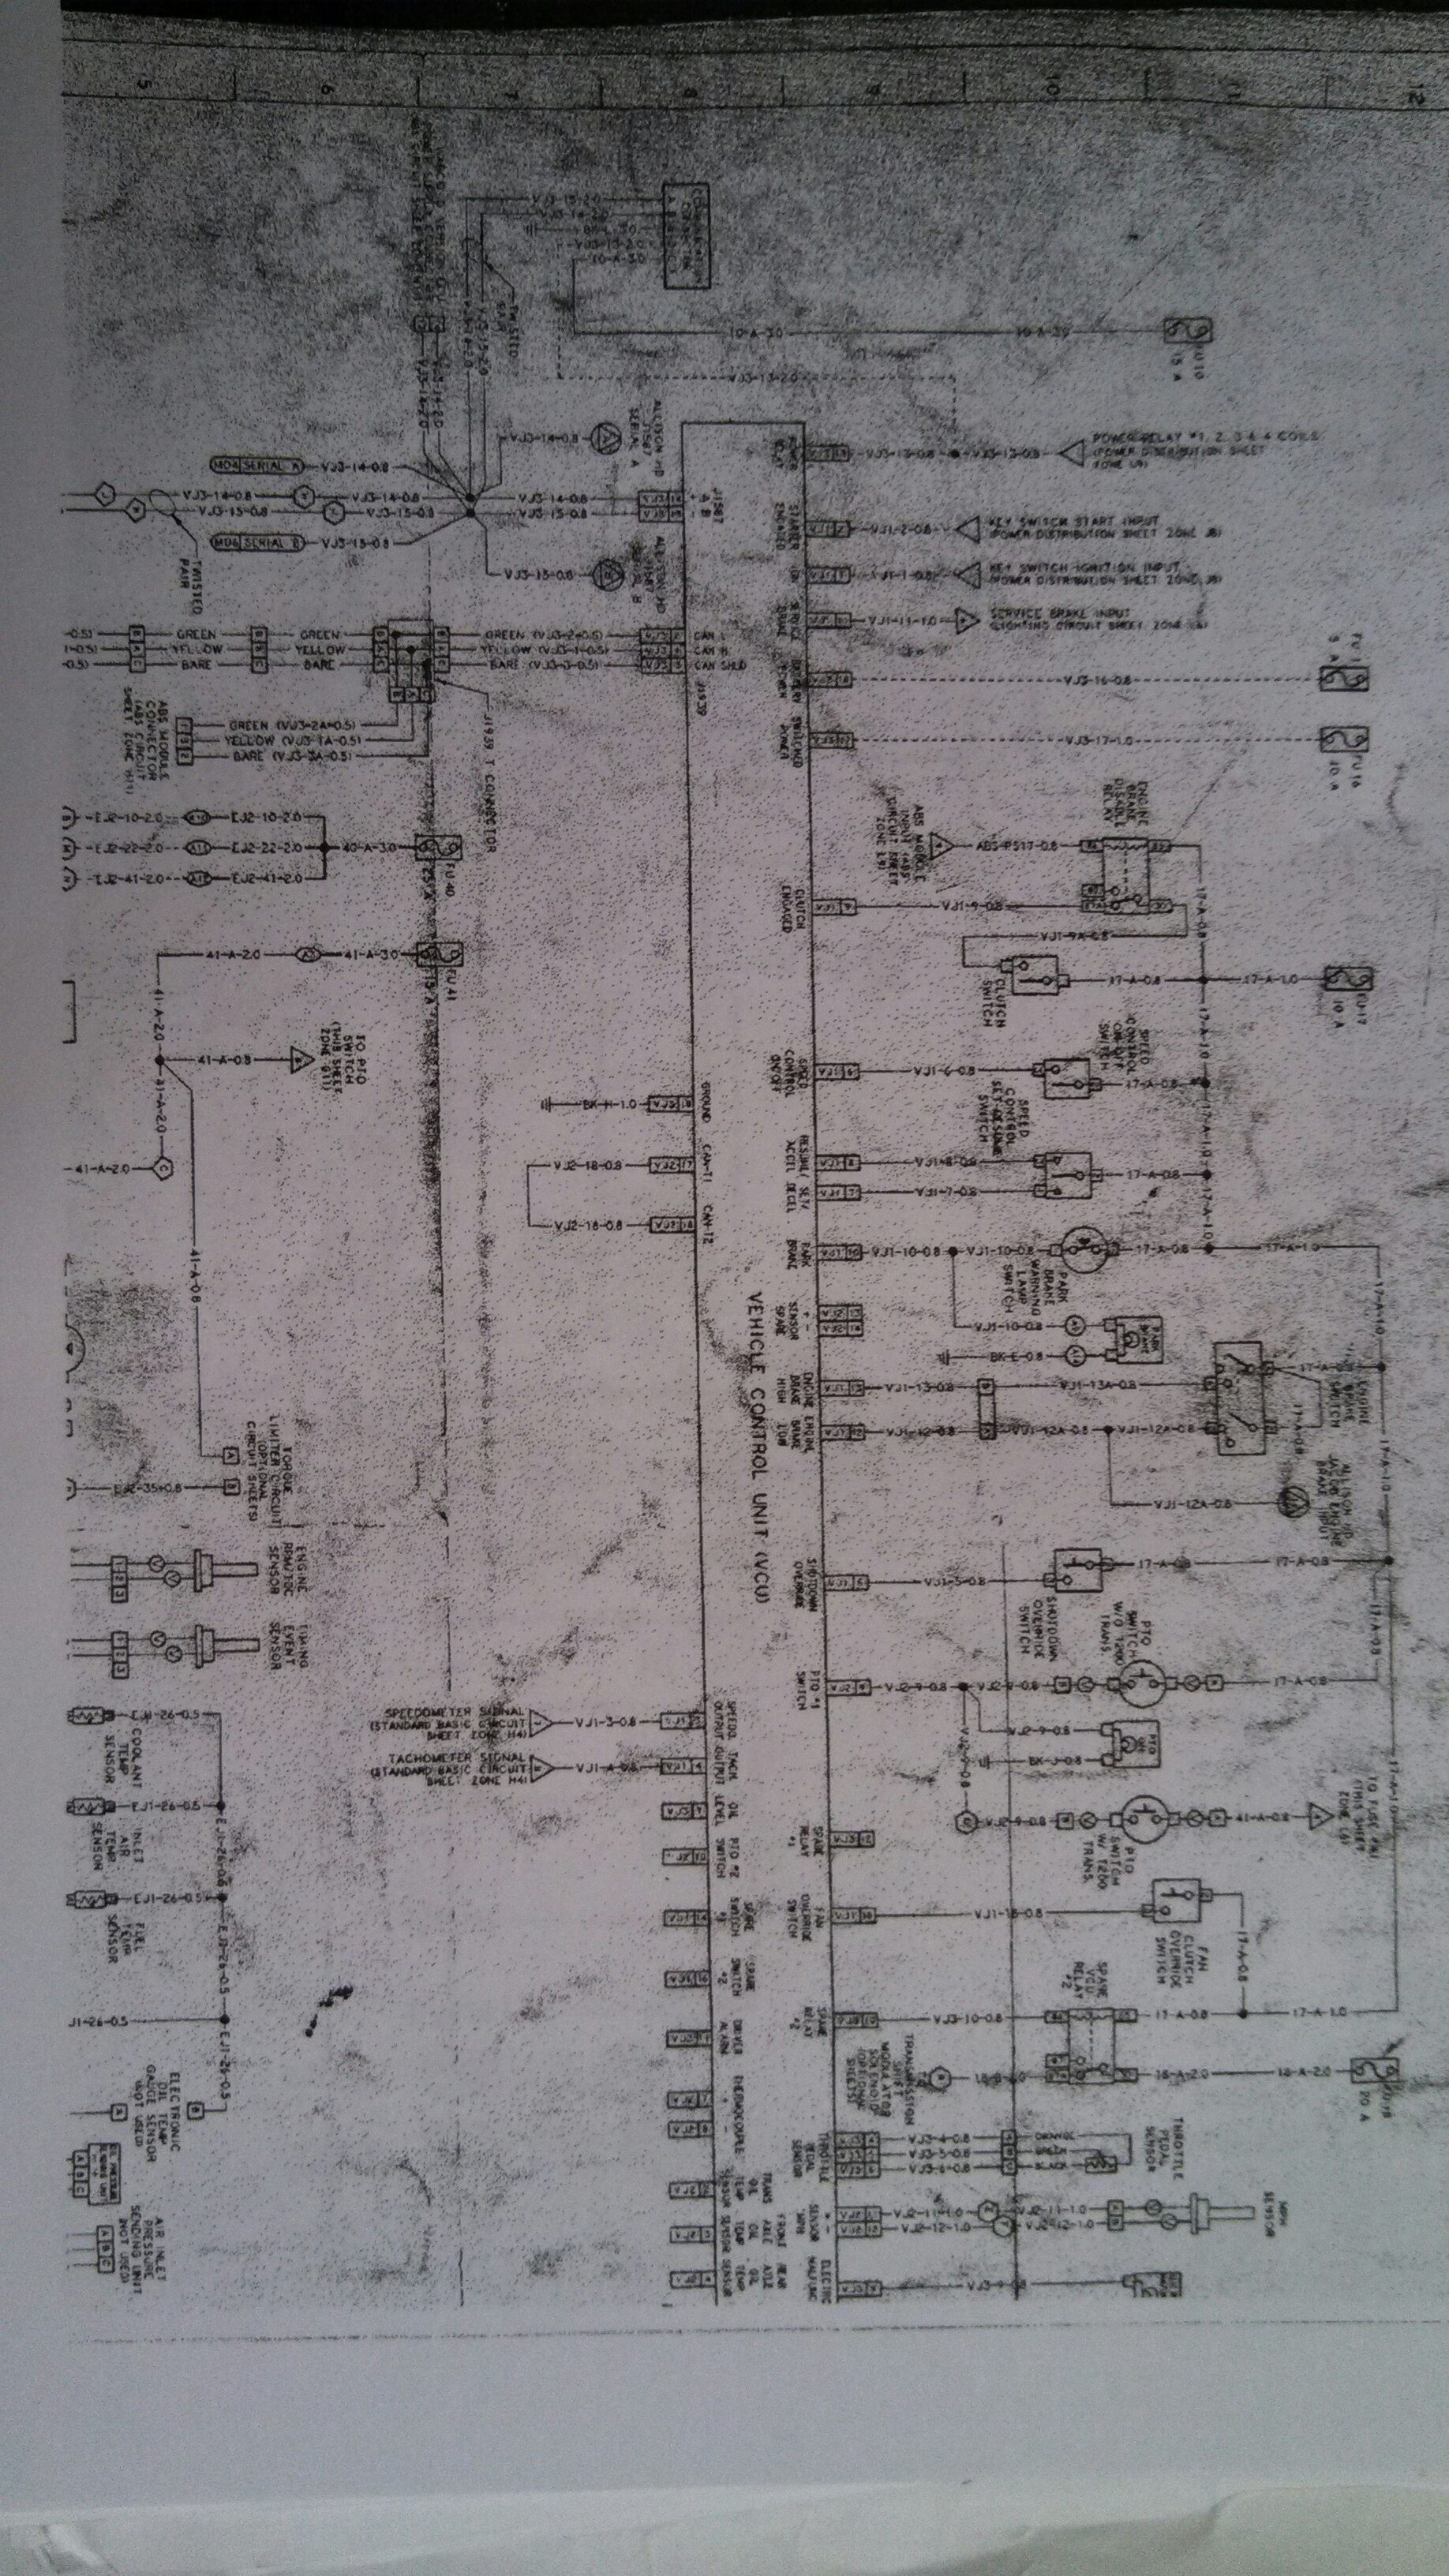 Mack Truck Wiring Diagram Another Blog About Electrical Diagrams For Trucks The 2010